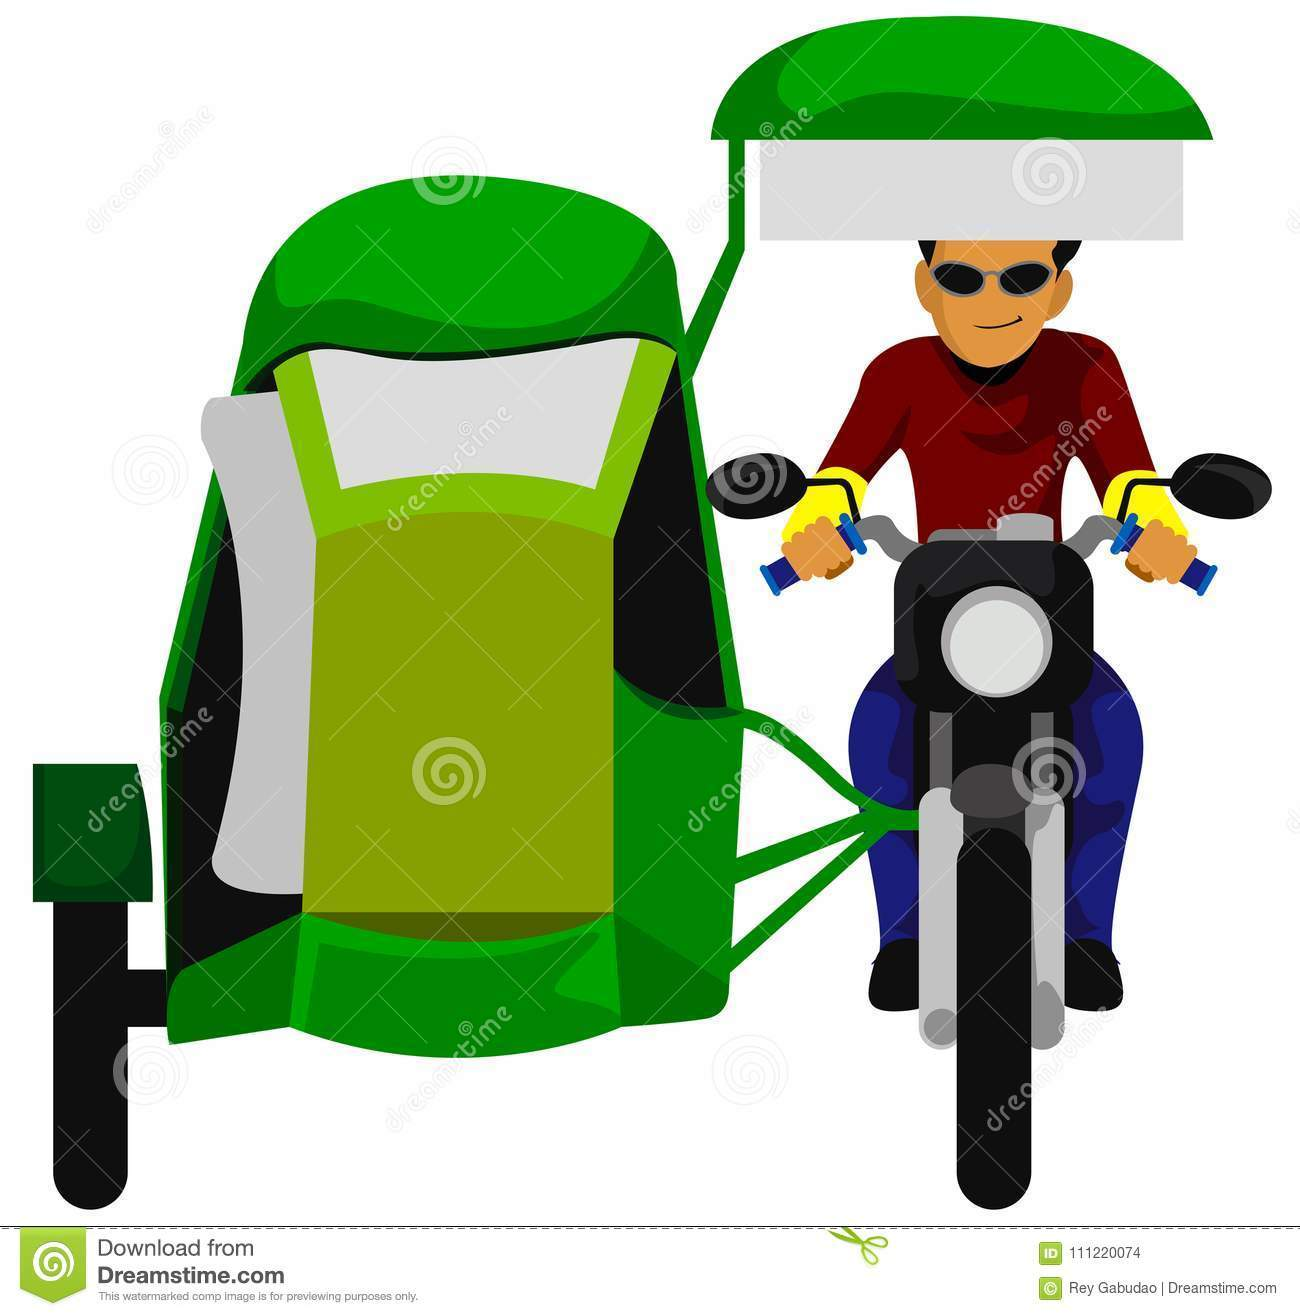 Philippine tricycle clipart 7 » Clipart Portal.